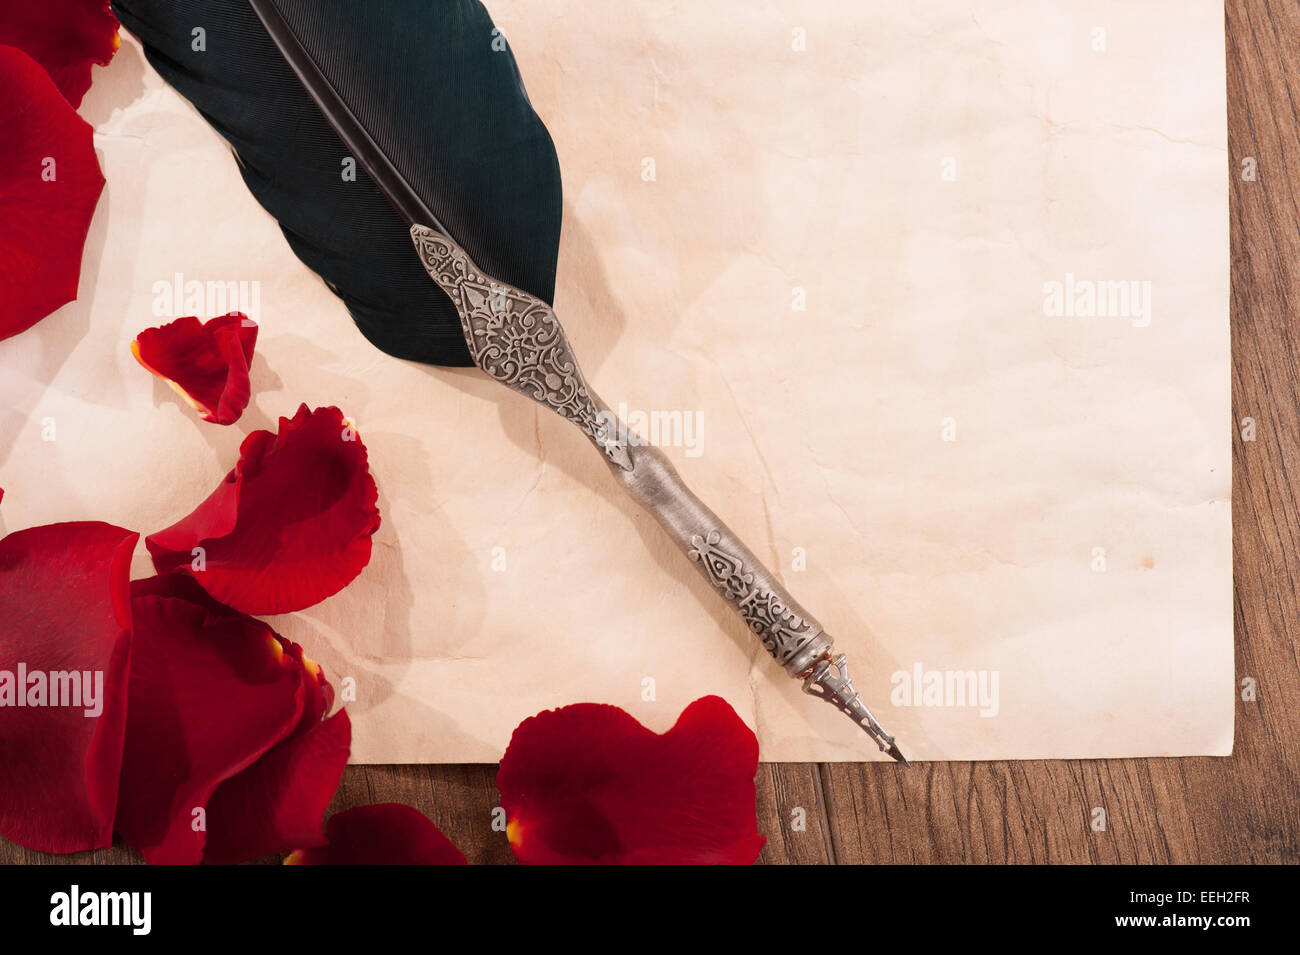 St. Valentines Day love message - Stock Image